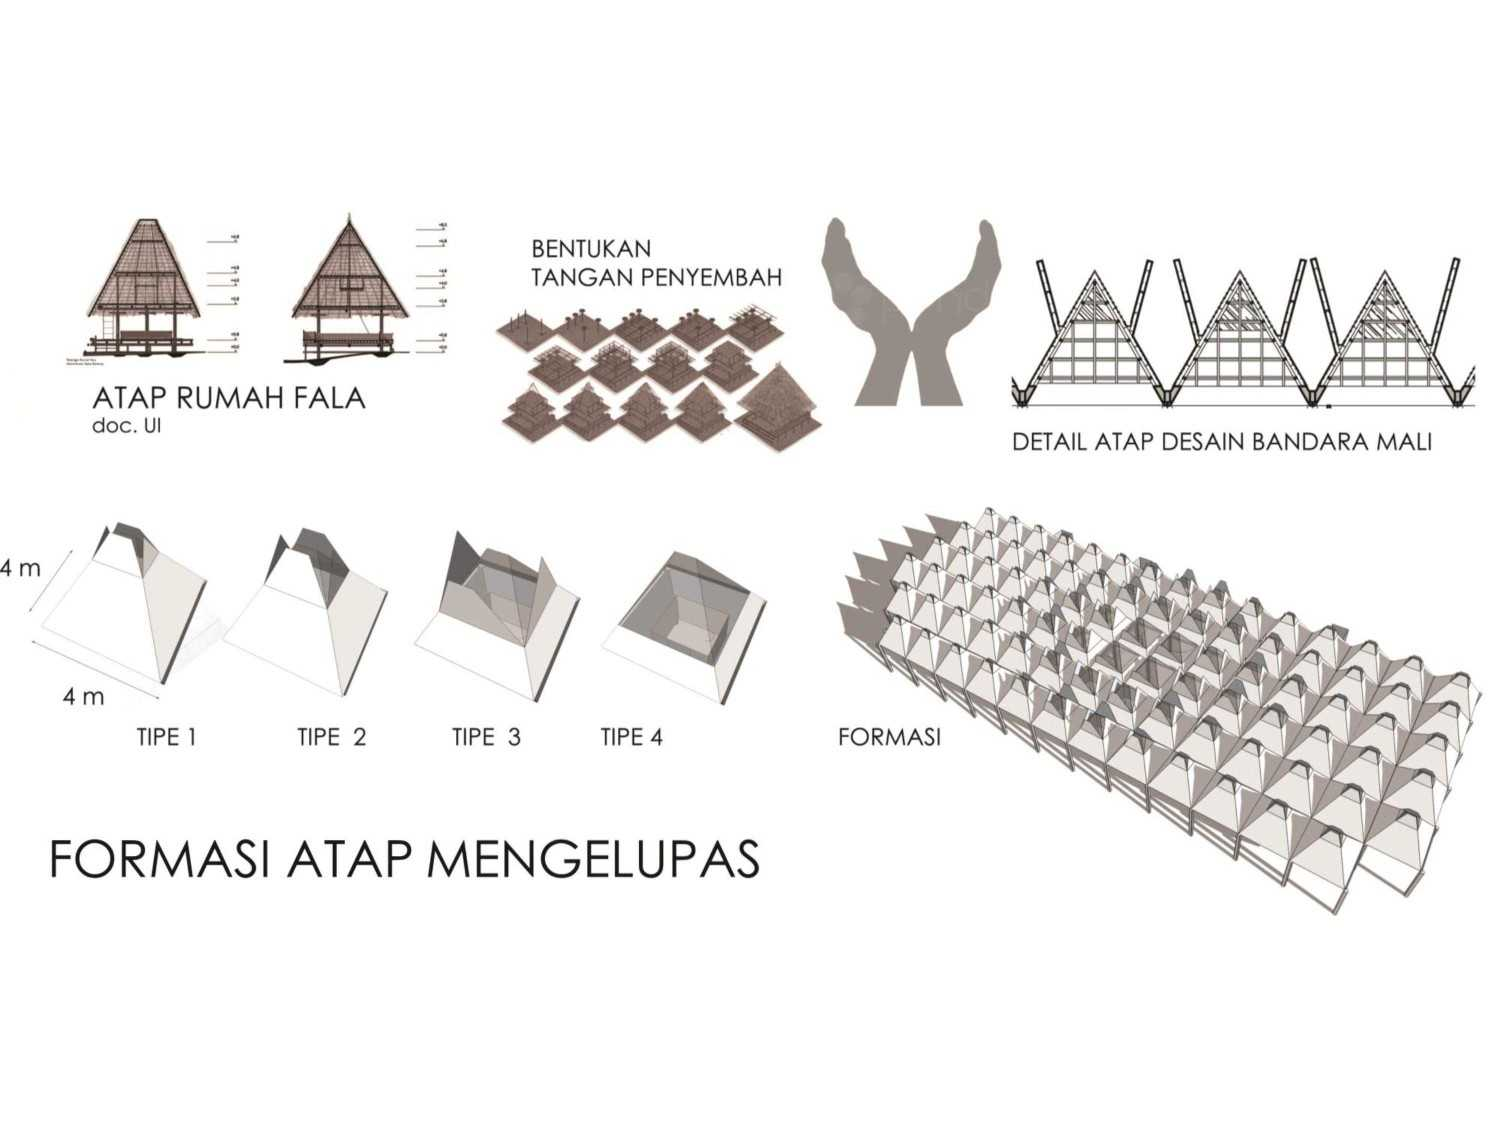 Monokroma Architect Mali Alor Airport  Alor, Ntt Alor, Ntt 9-Roof-Formation Kontemporer 14819